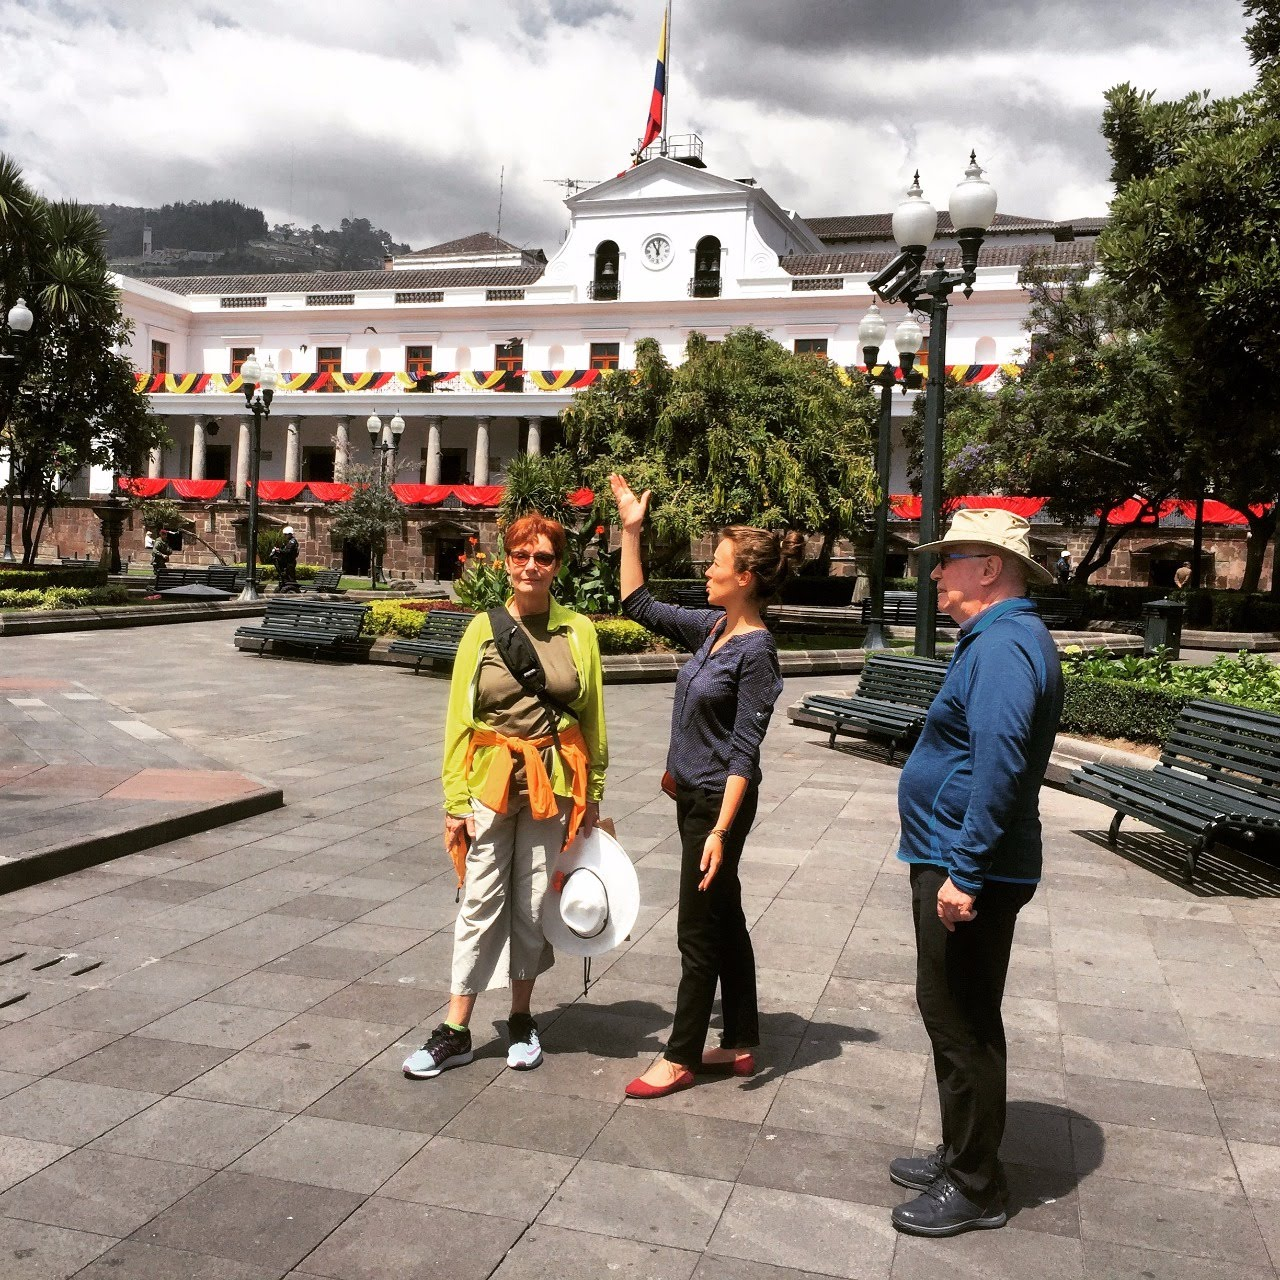 Presidential-palace Quito